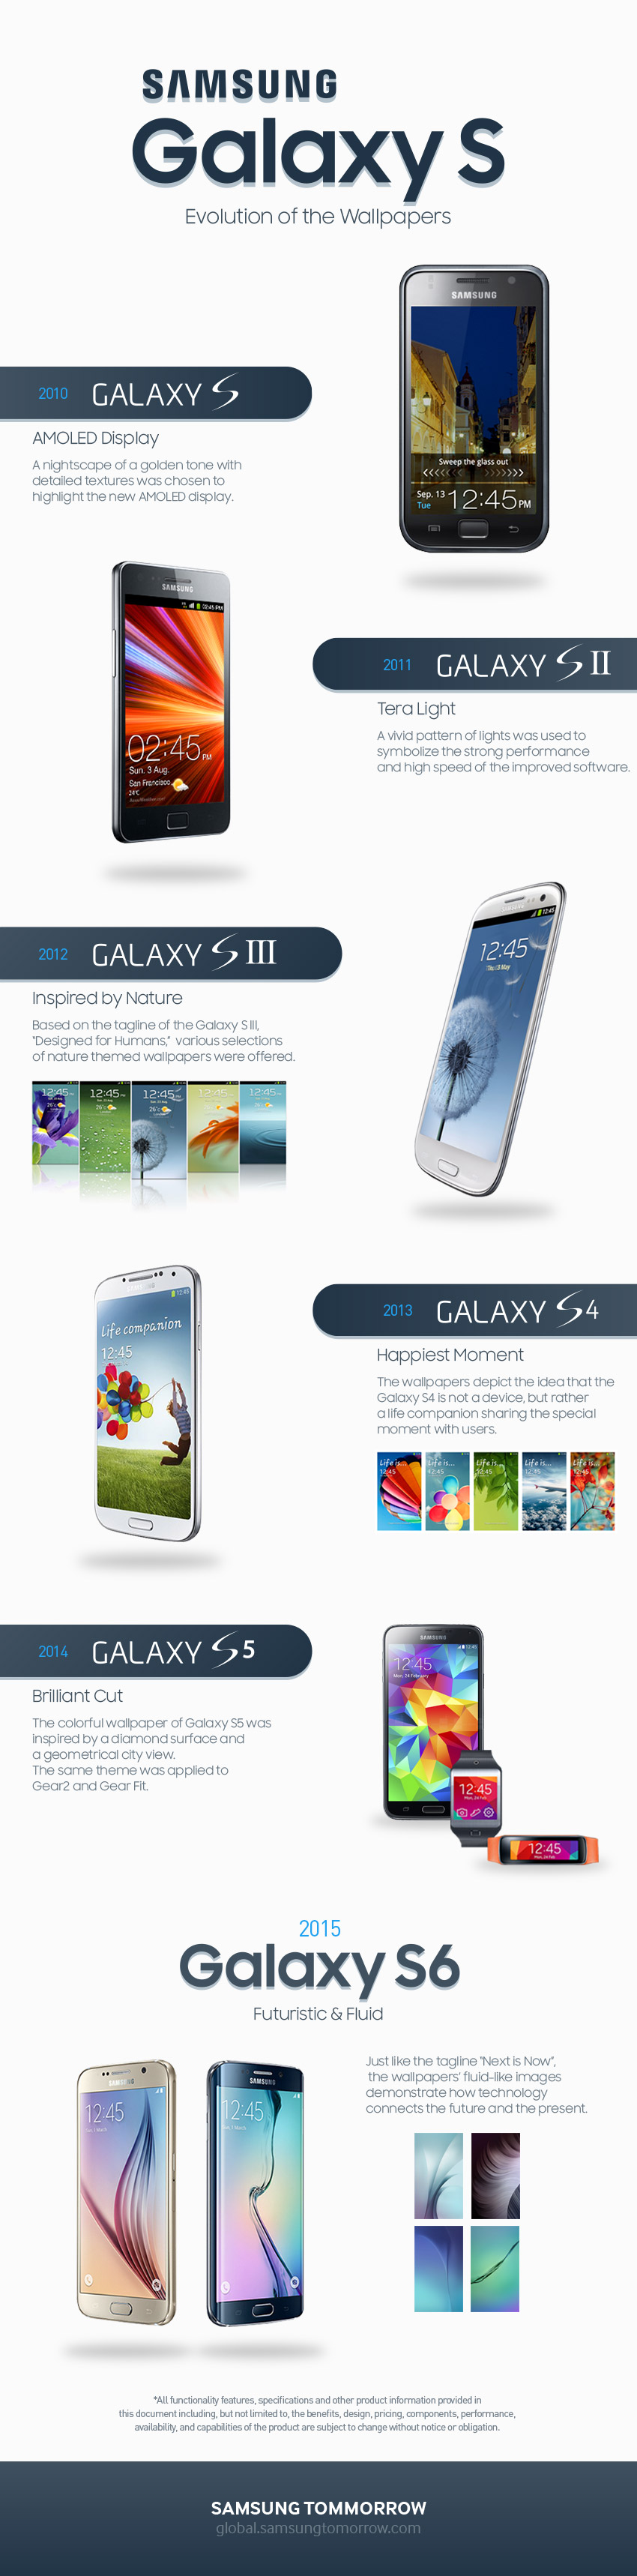 Samsung Explains The Evolution Of Galaxy S Series Wallpapers Sammobile Sammobile